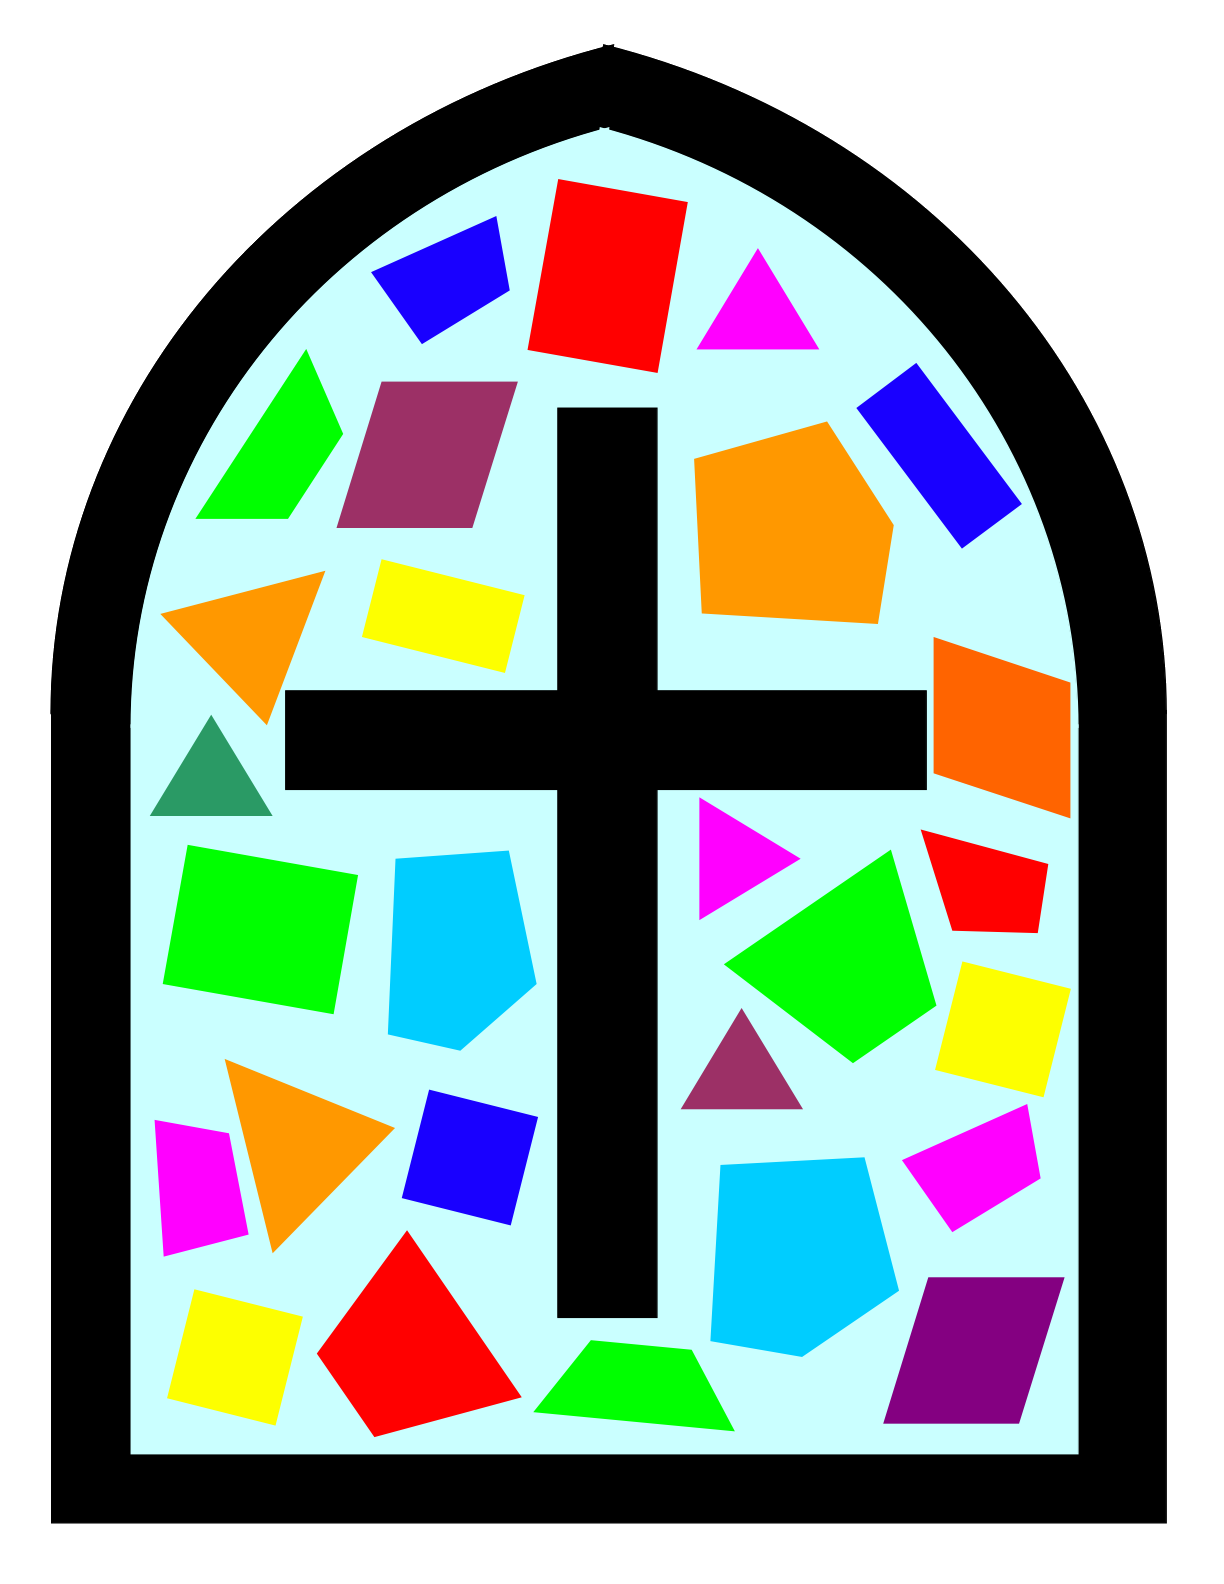 Church window png vector. Arched stained glass clipart